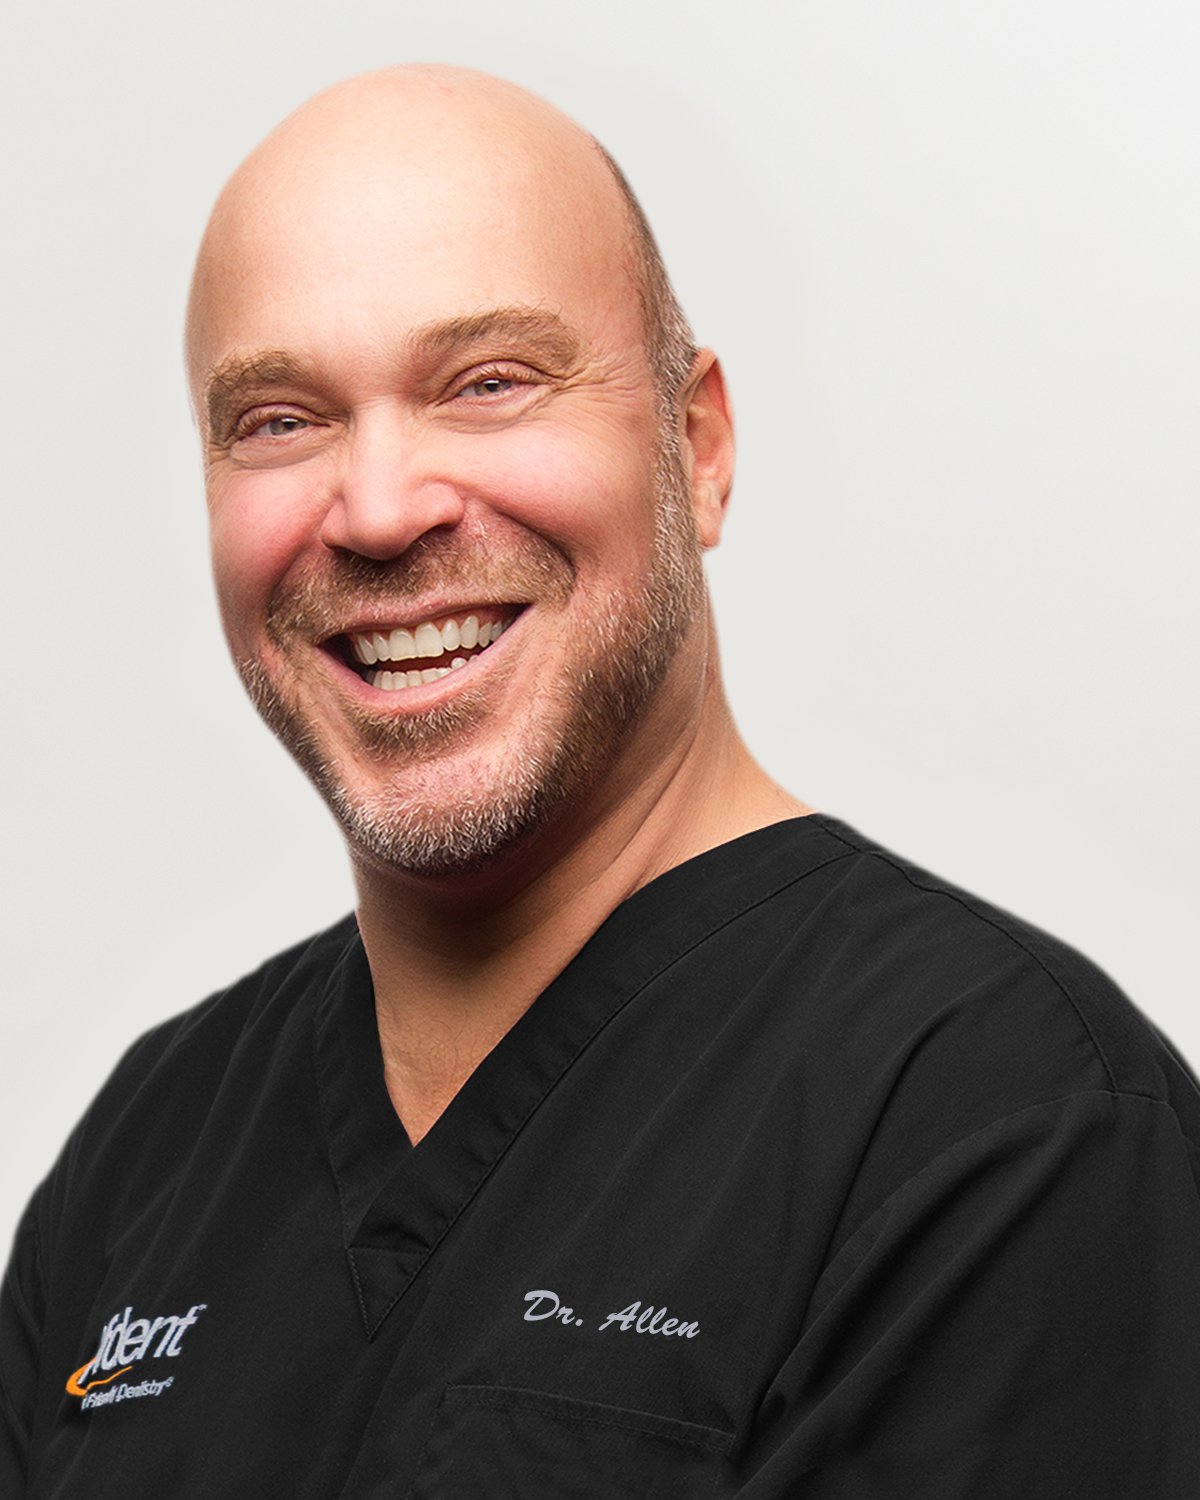 Dr. David M. Allen, DDS | Dental Care in Fort Wayne, IN